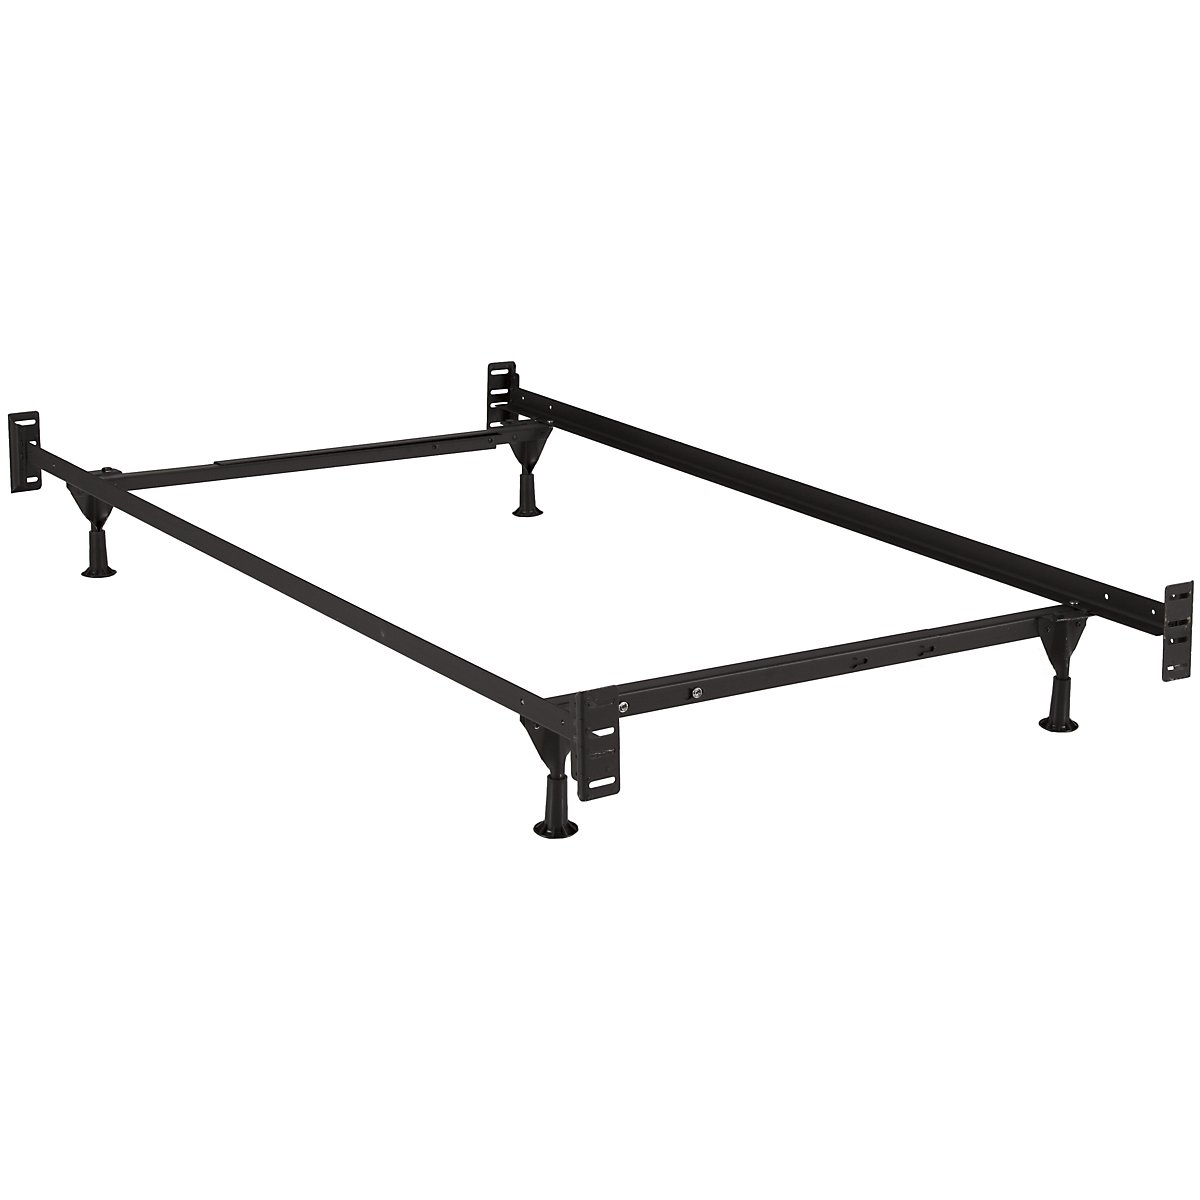 Kenya Iron Counter Table Base In Distressed Black besides Bathroom Scale Reviews further 17 Open Floor Plans With Loft besides 7228 likewise Mt Mantua 4 Leg Hb Fb Frame 1. on ottomans for living room